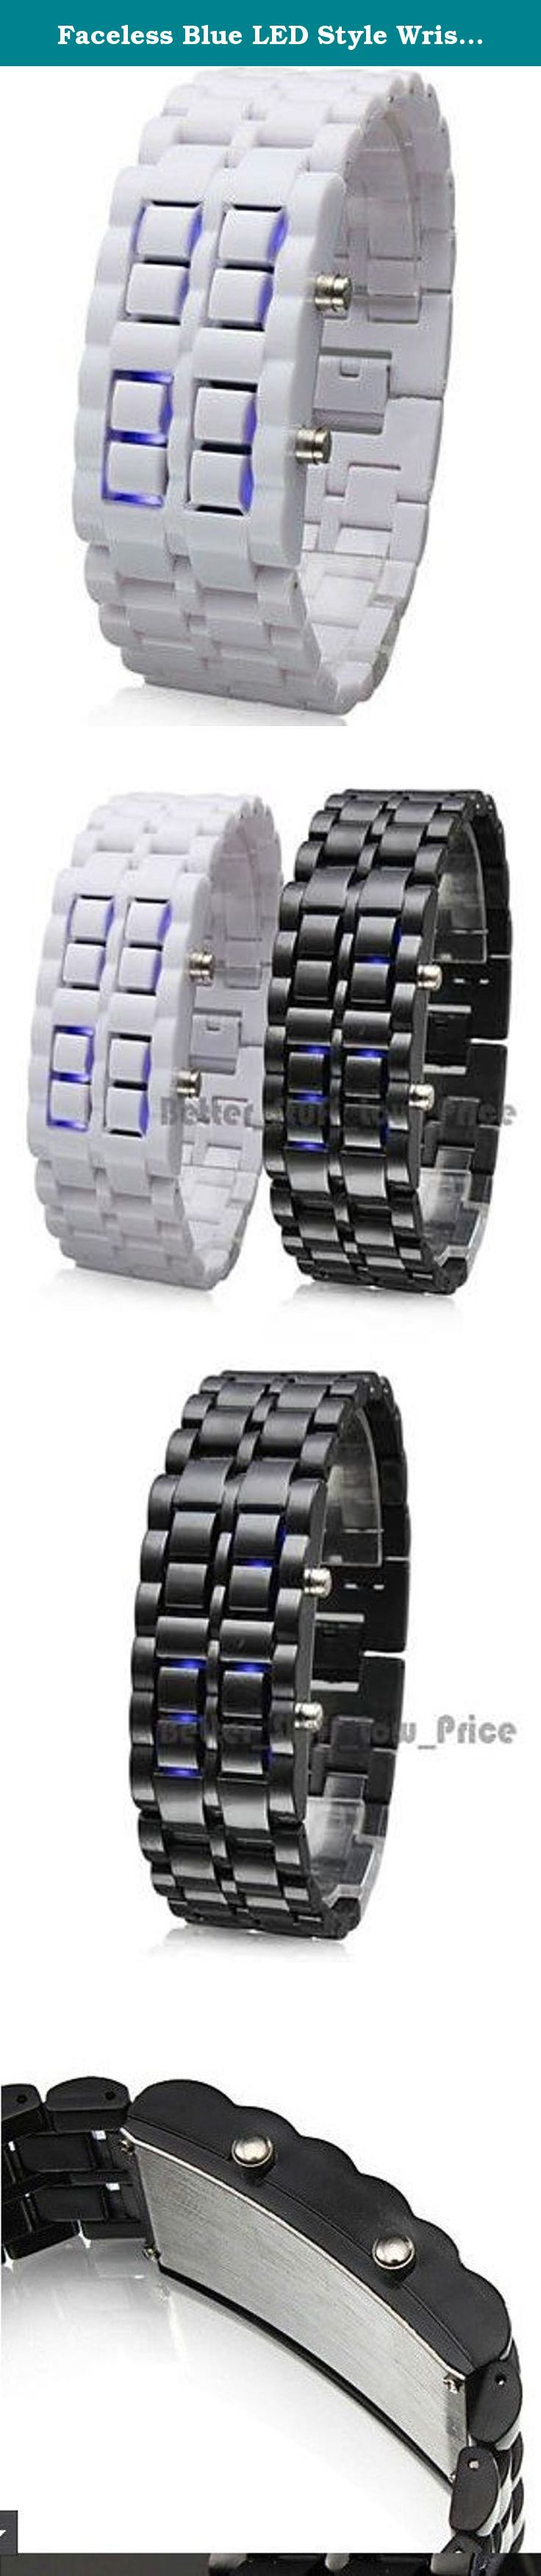 Faceless Blue LED Style Wrist Watches for Children's Best Gifts (White). From the Manufacturer Brand Name:HZZ Gender: Men's, Women's Movement: LED Display: Digital Style: Couple's Watches Type: Casual Watches, Sport Watches Band Material: Plastic Band Color: Black, White Band Length Approx (cm): 22.5 .